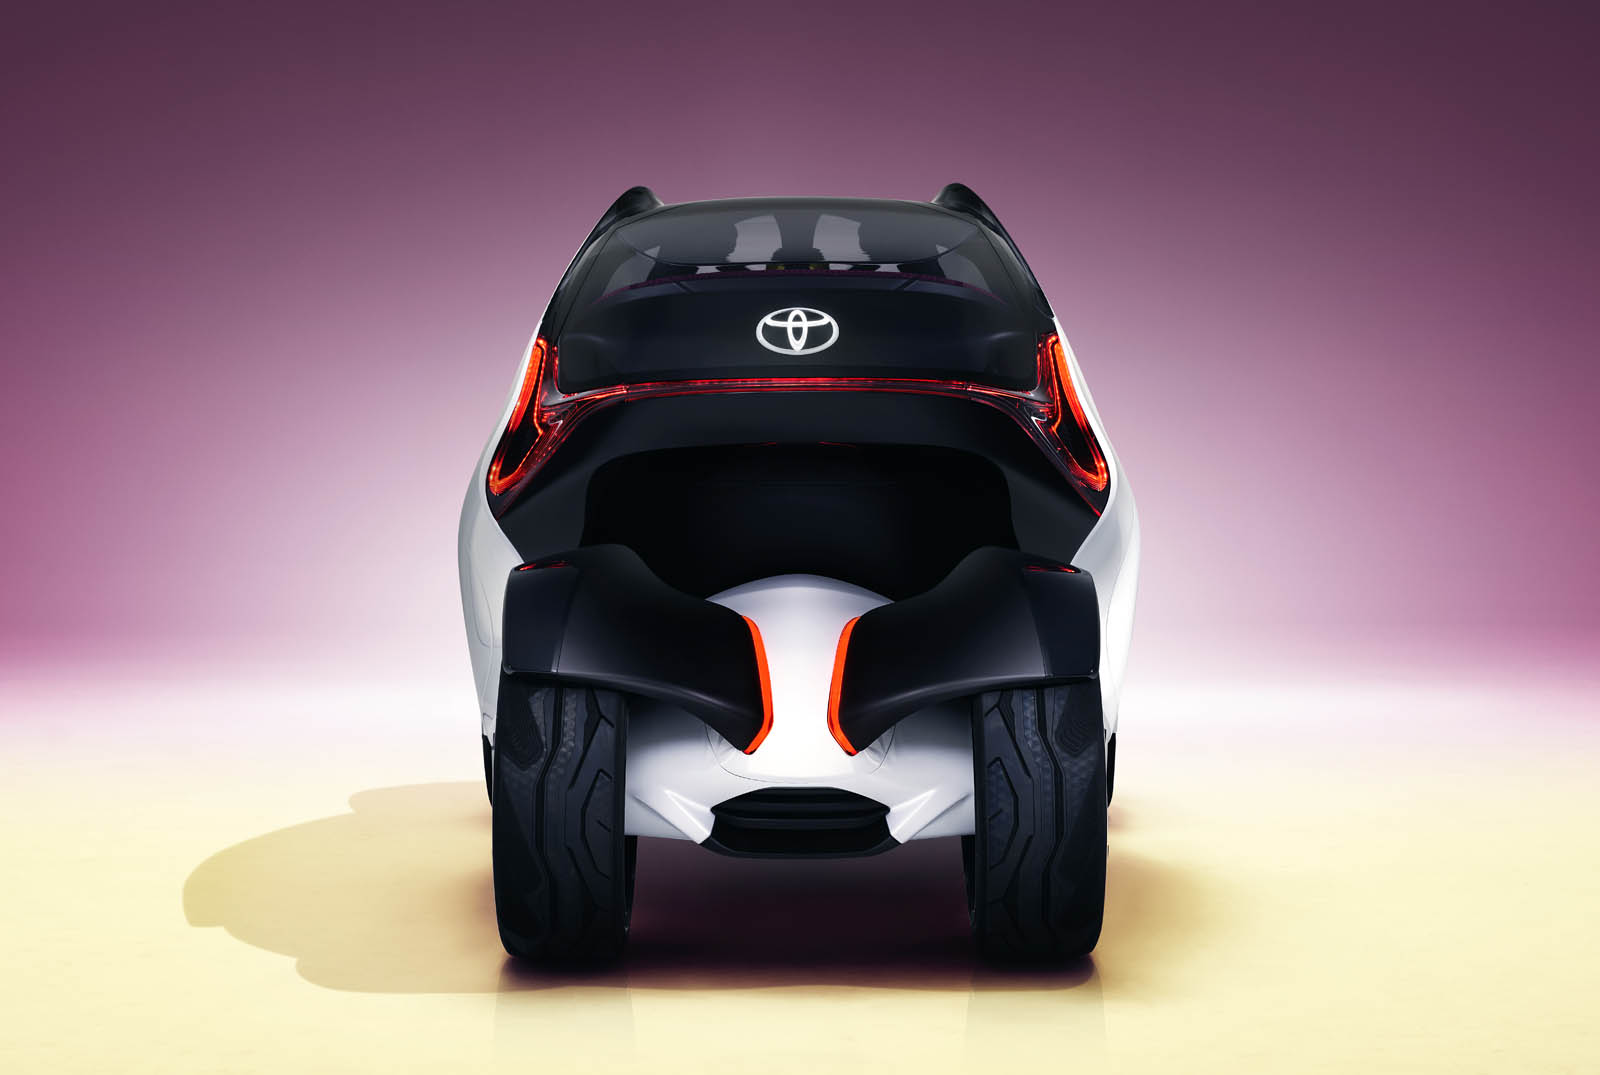 2017_Toyota_Concept_i-Tril_Static_11 copy